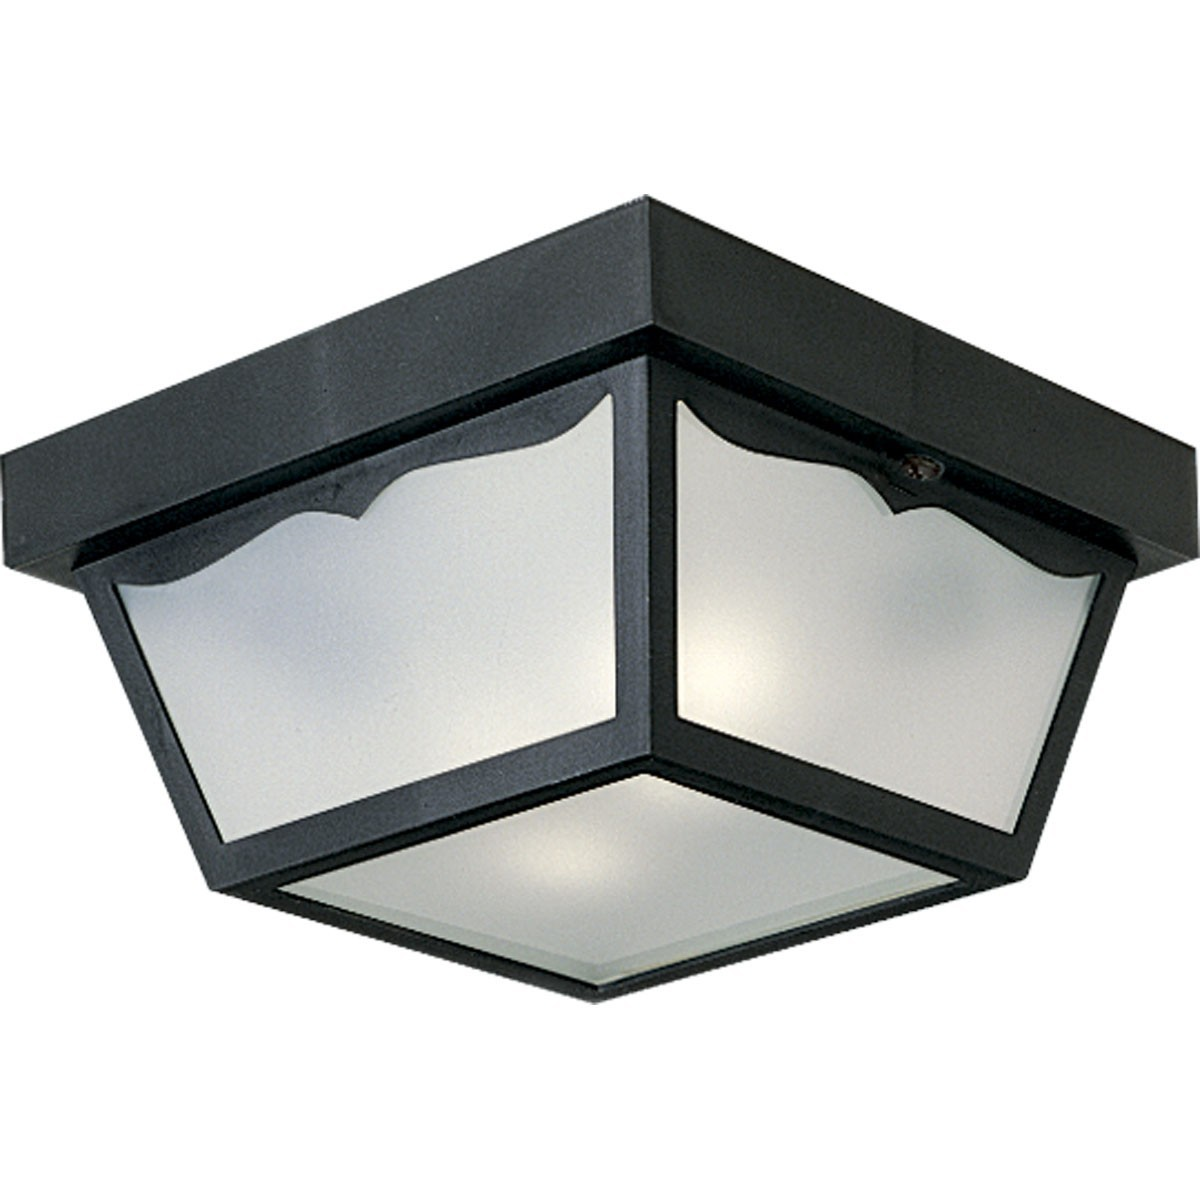 Outstanding designs of outdoor ceiling lights warisan lighting outstanding designs of outdoor ceiling lights aloadofball Image collections